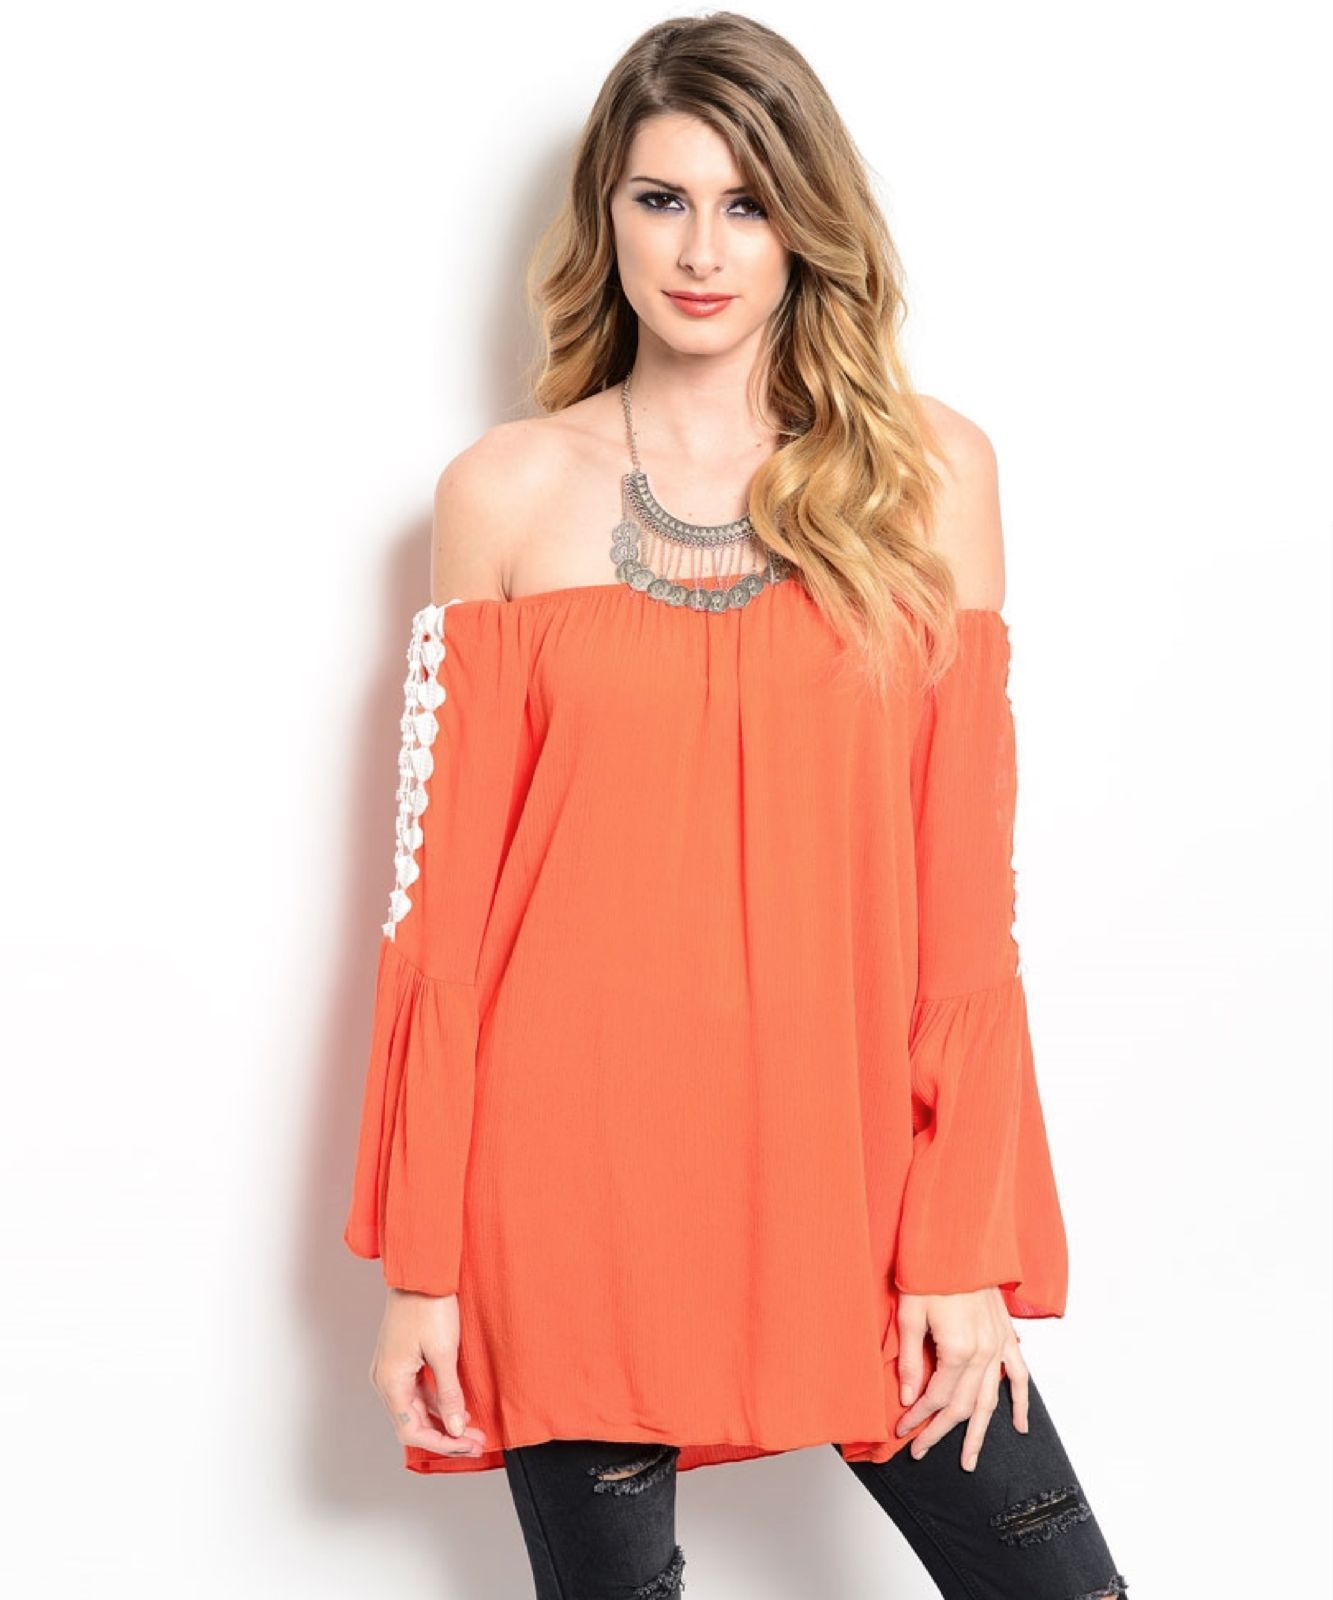 Flirty Tangerine Orange Off Shoulder Boho Jrs Party Cruise Top, Crochet Inset -